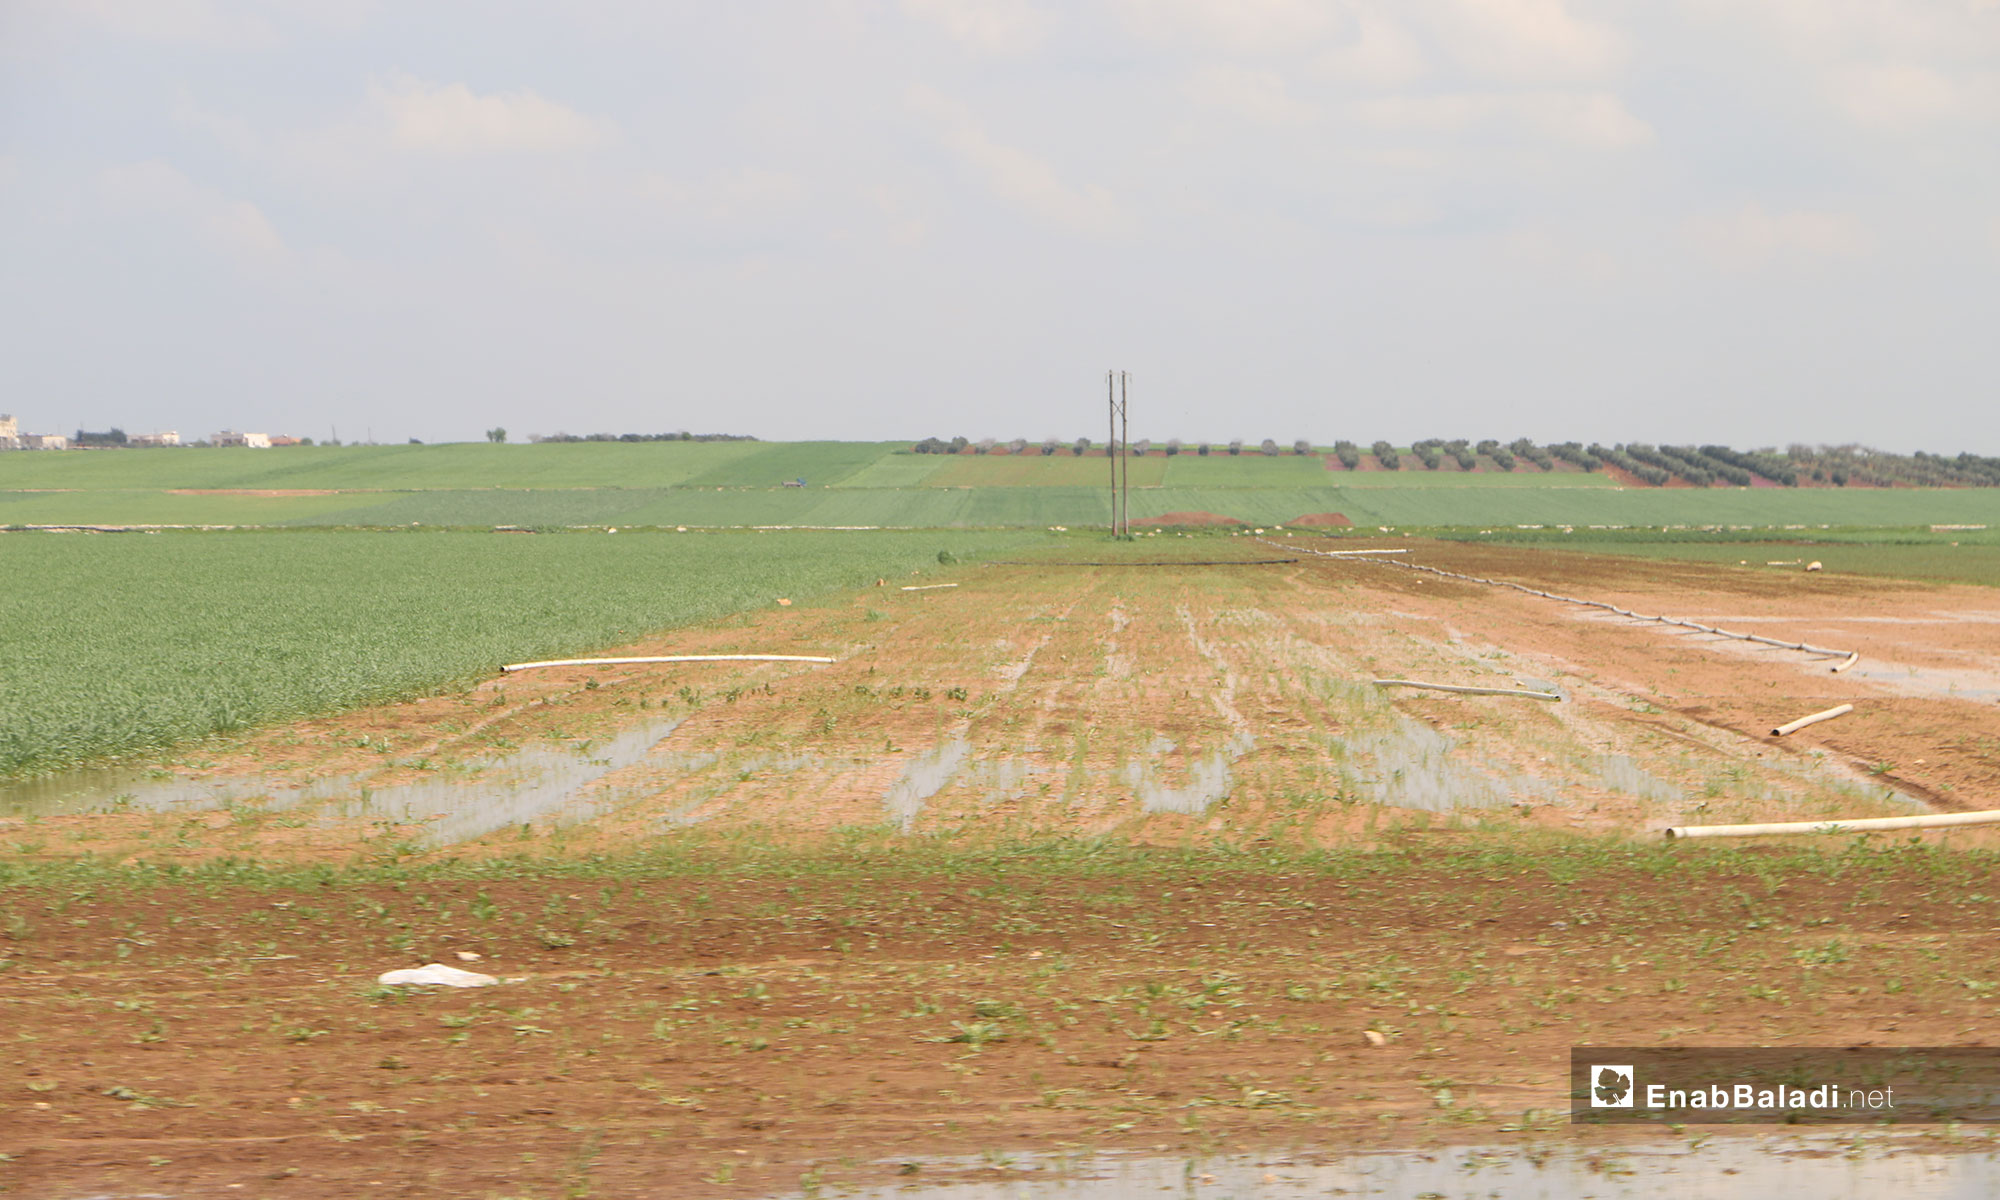 The destruction that befell large agricultural areas in northern rural Aleppo – April 4, 2019 (Enab Baladi)